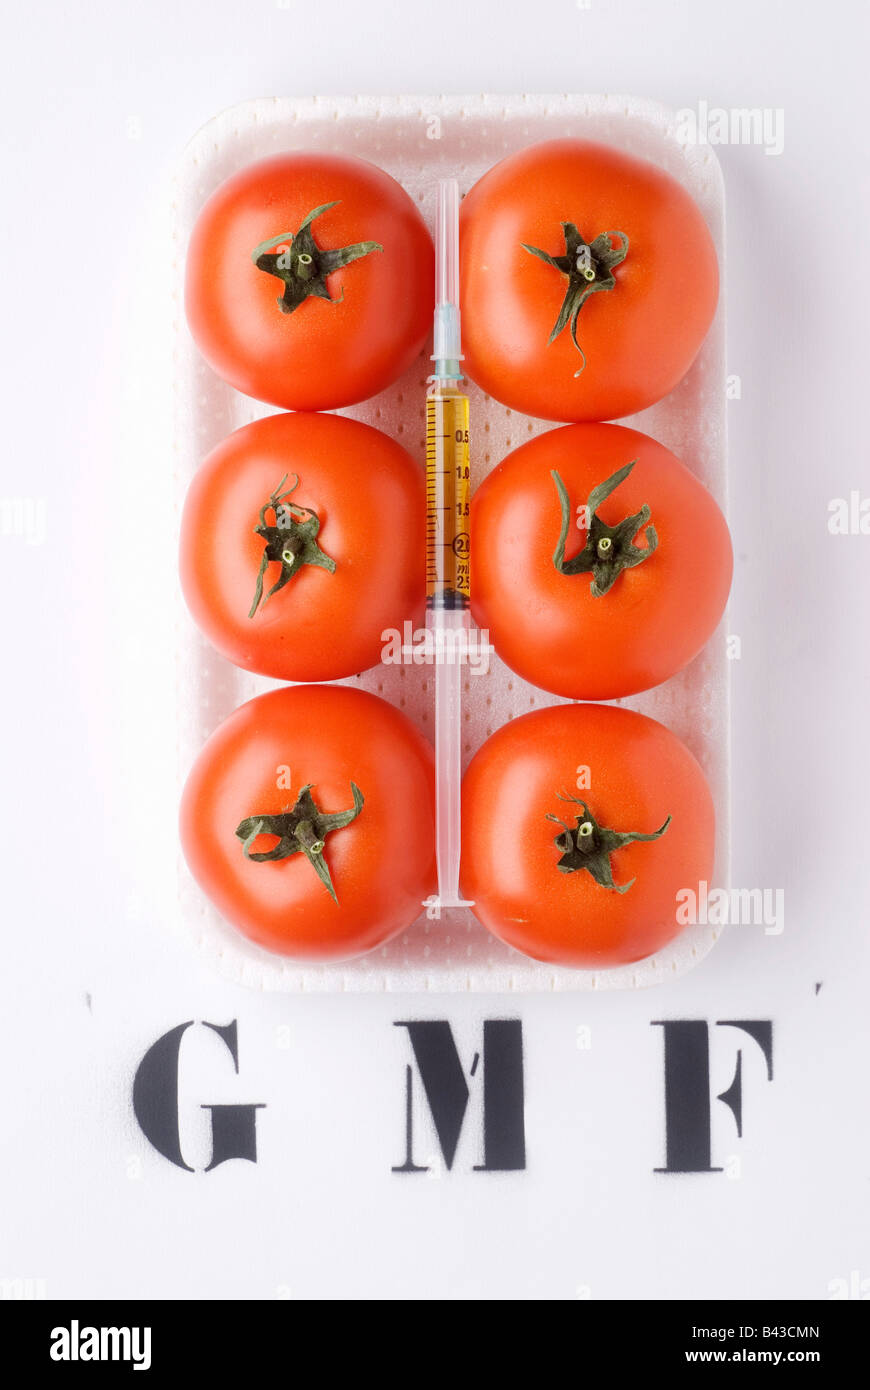 Seringue avec tomates GM Photo Stock